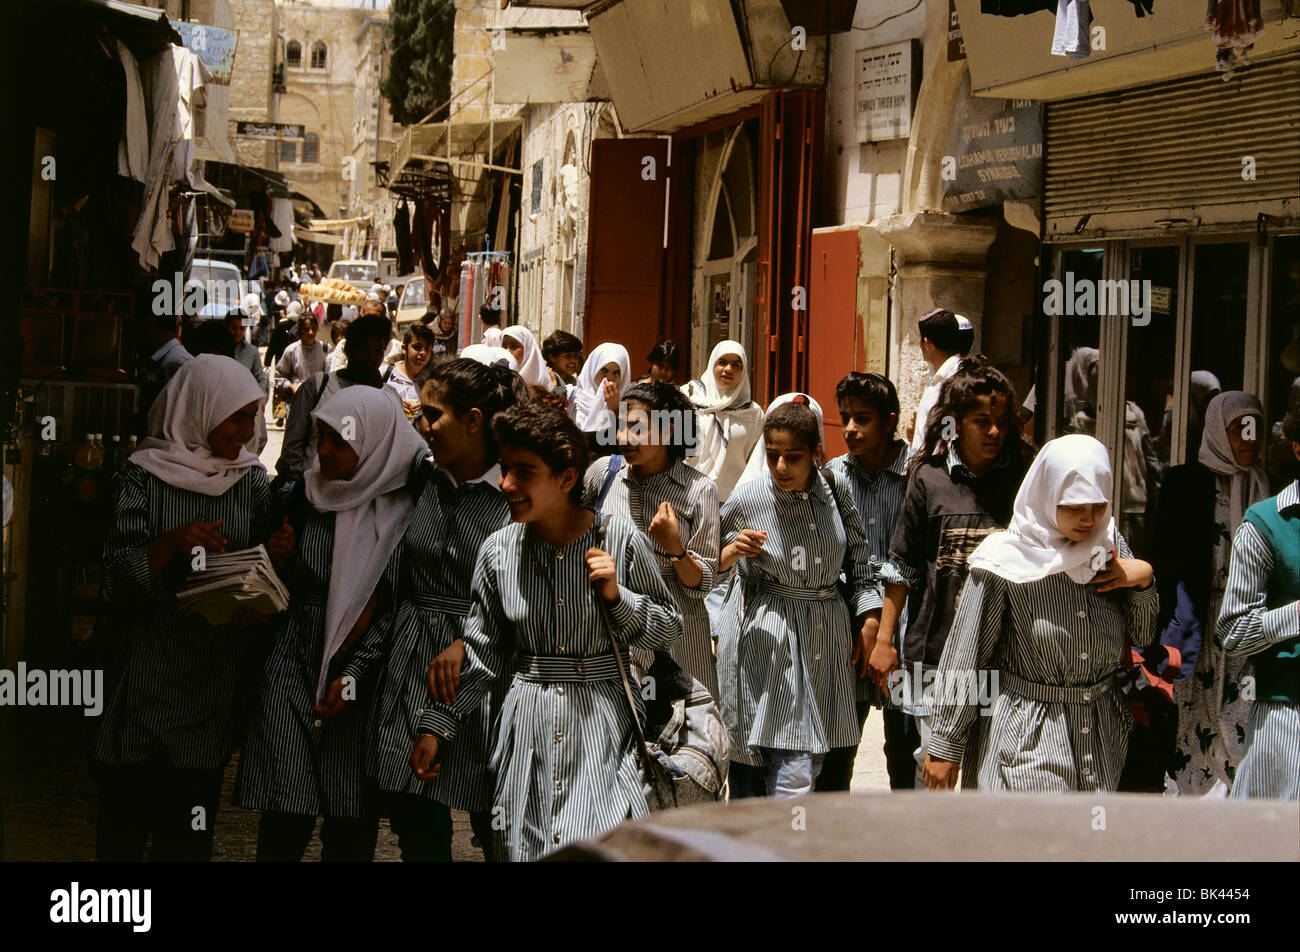 School children walking in the streets of The Old City, Jerusalem - Stock Image